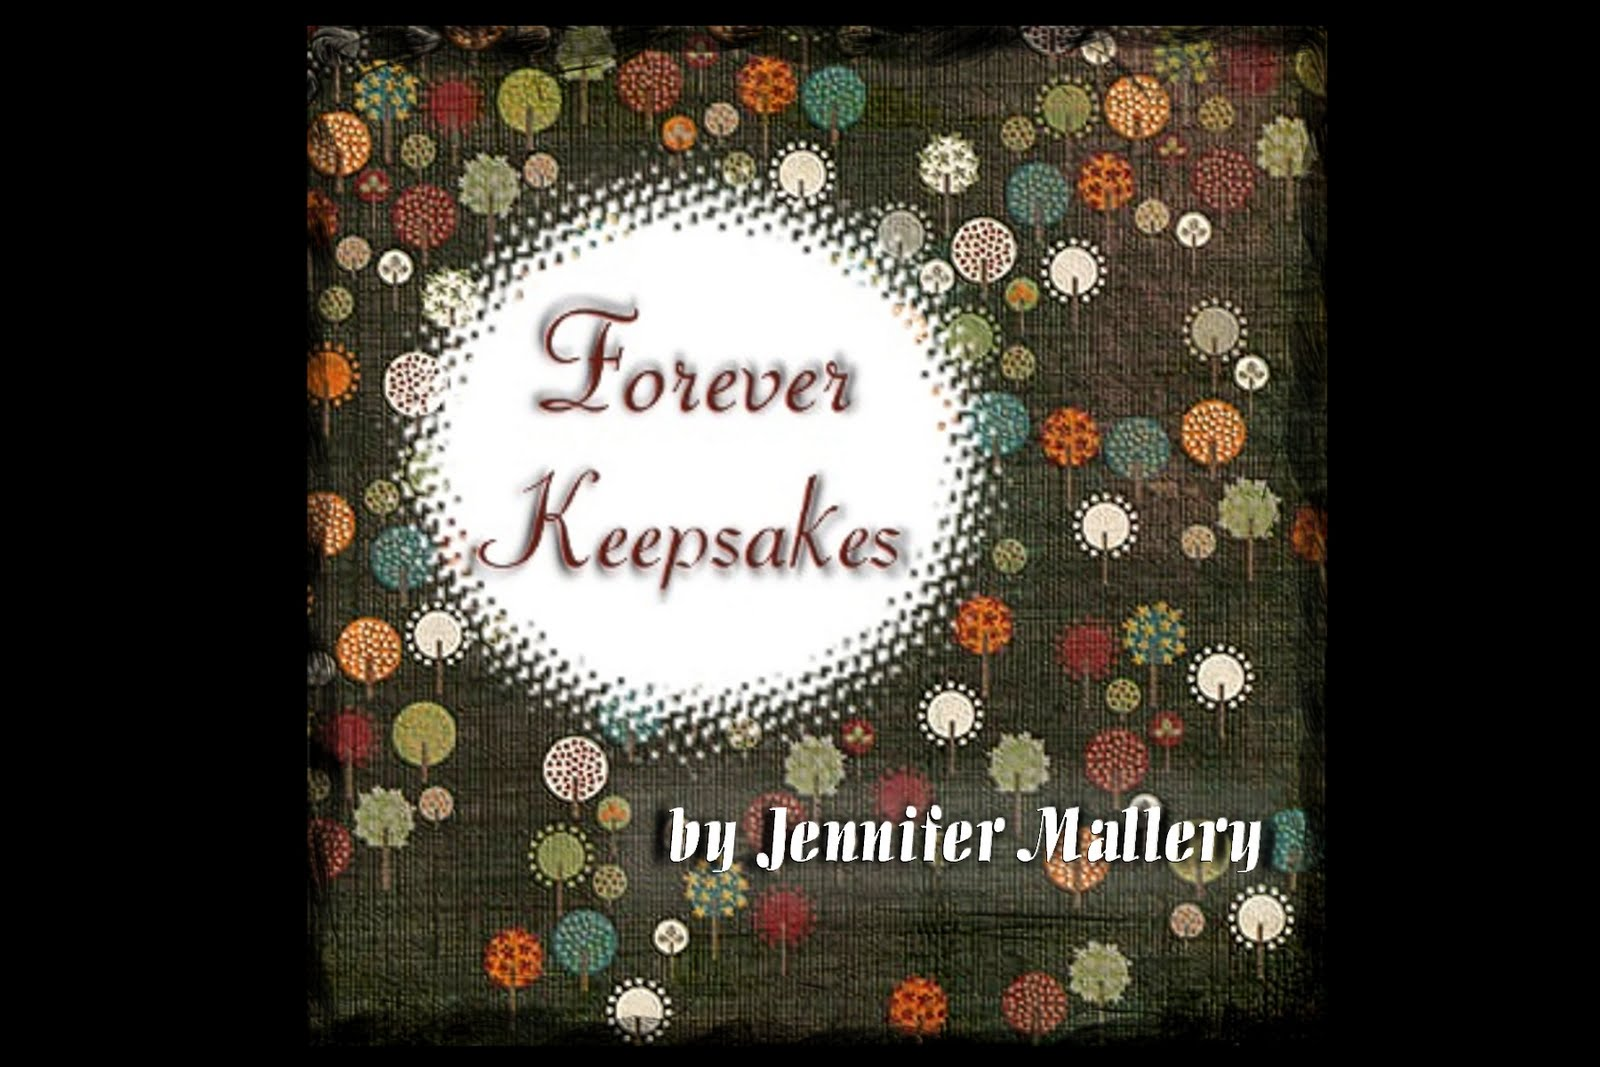 Forever Keepsakes by Jennifer Mallery